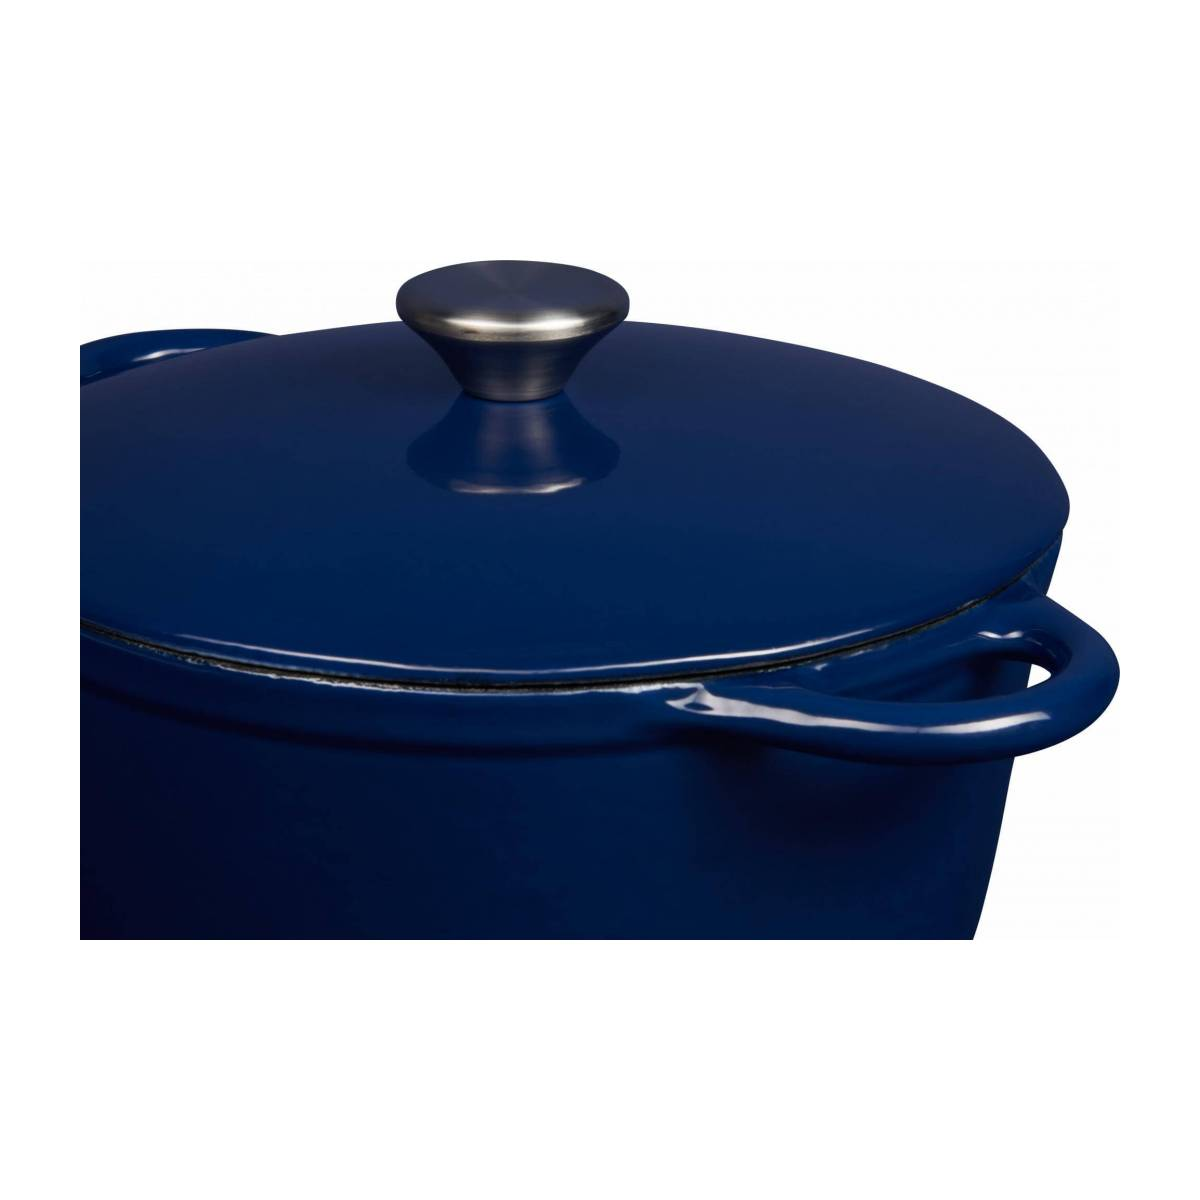 Cast iron cooker 23 cm, blue n°5